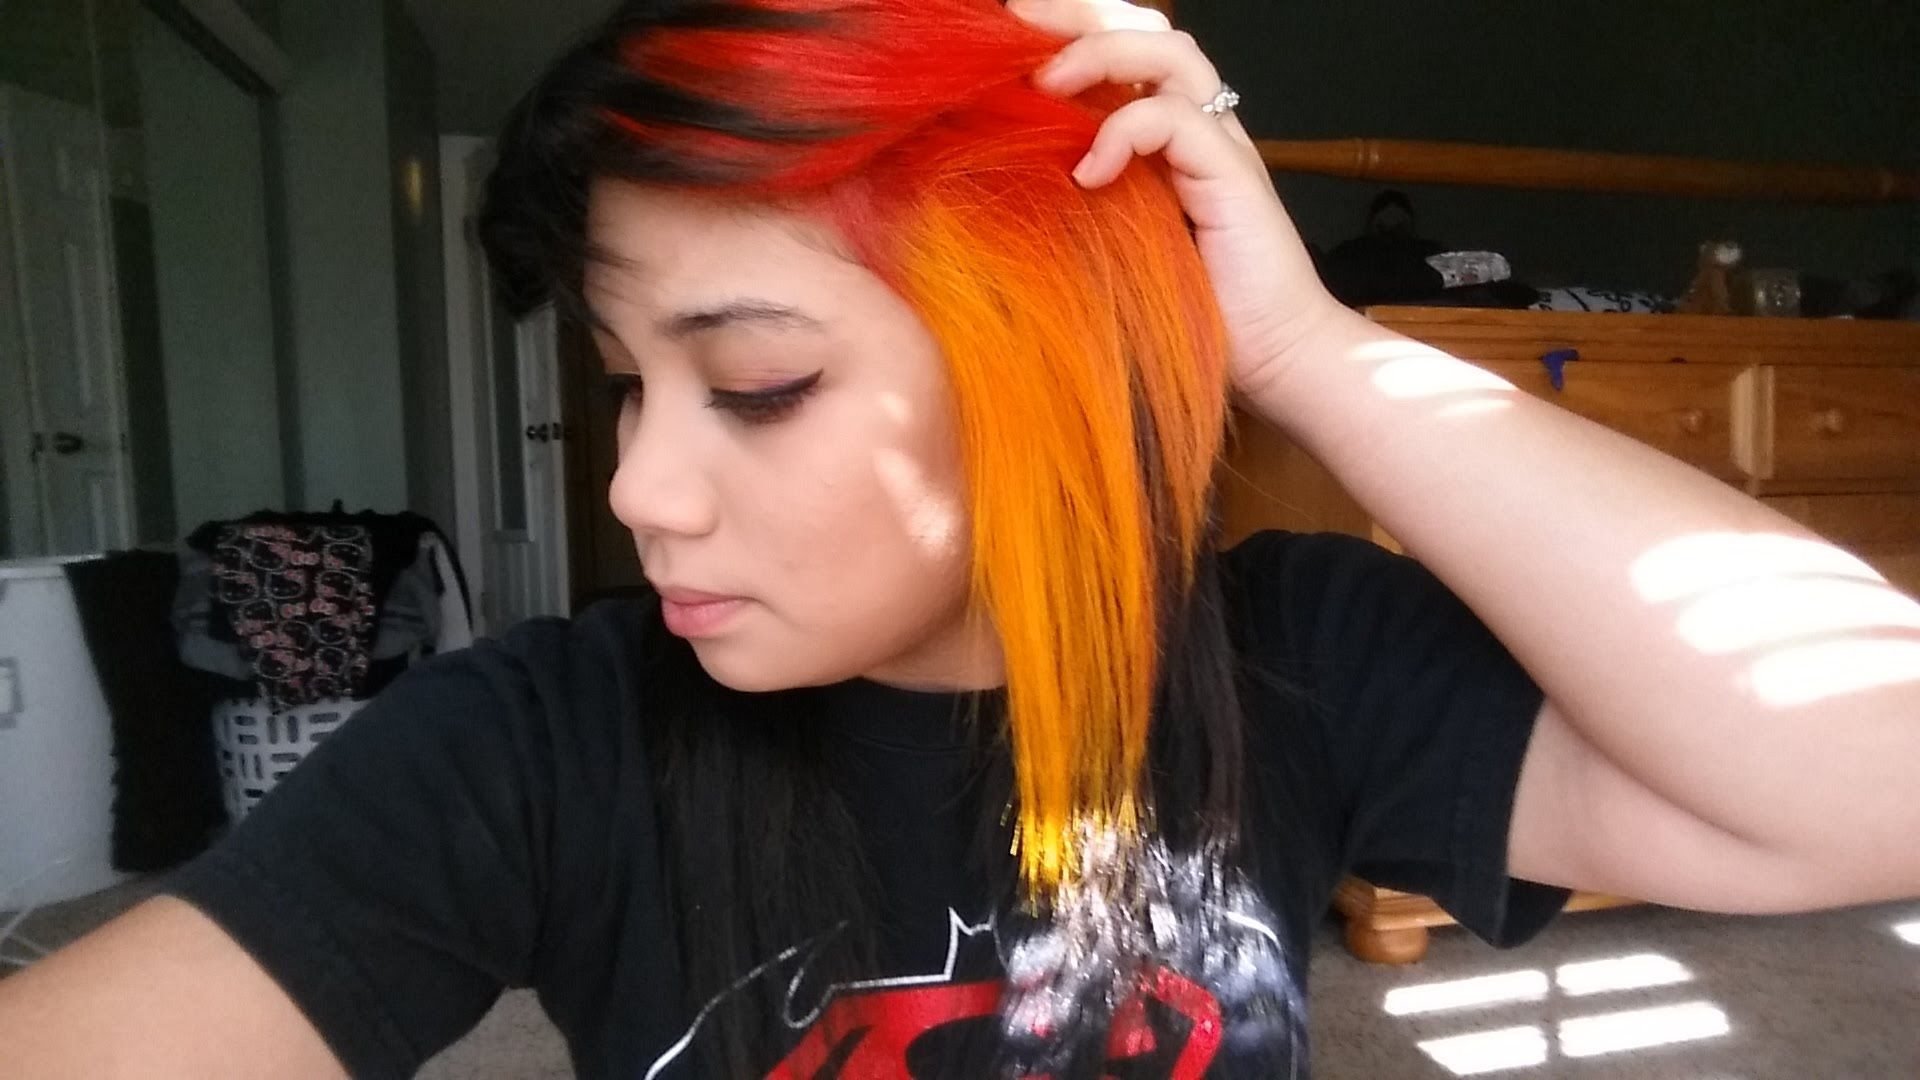 How To Dye Phoenix Fire Hair Red To Yellow Ombre Splat Hair Dye Hair Dye Tutorial Flame Hair